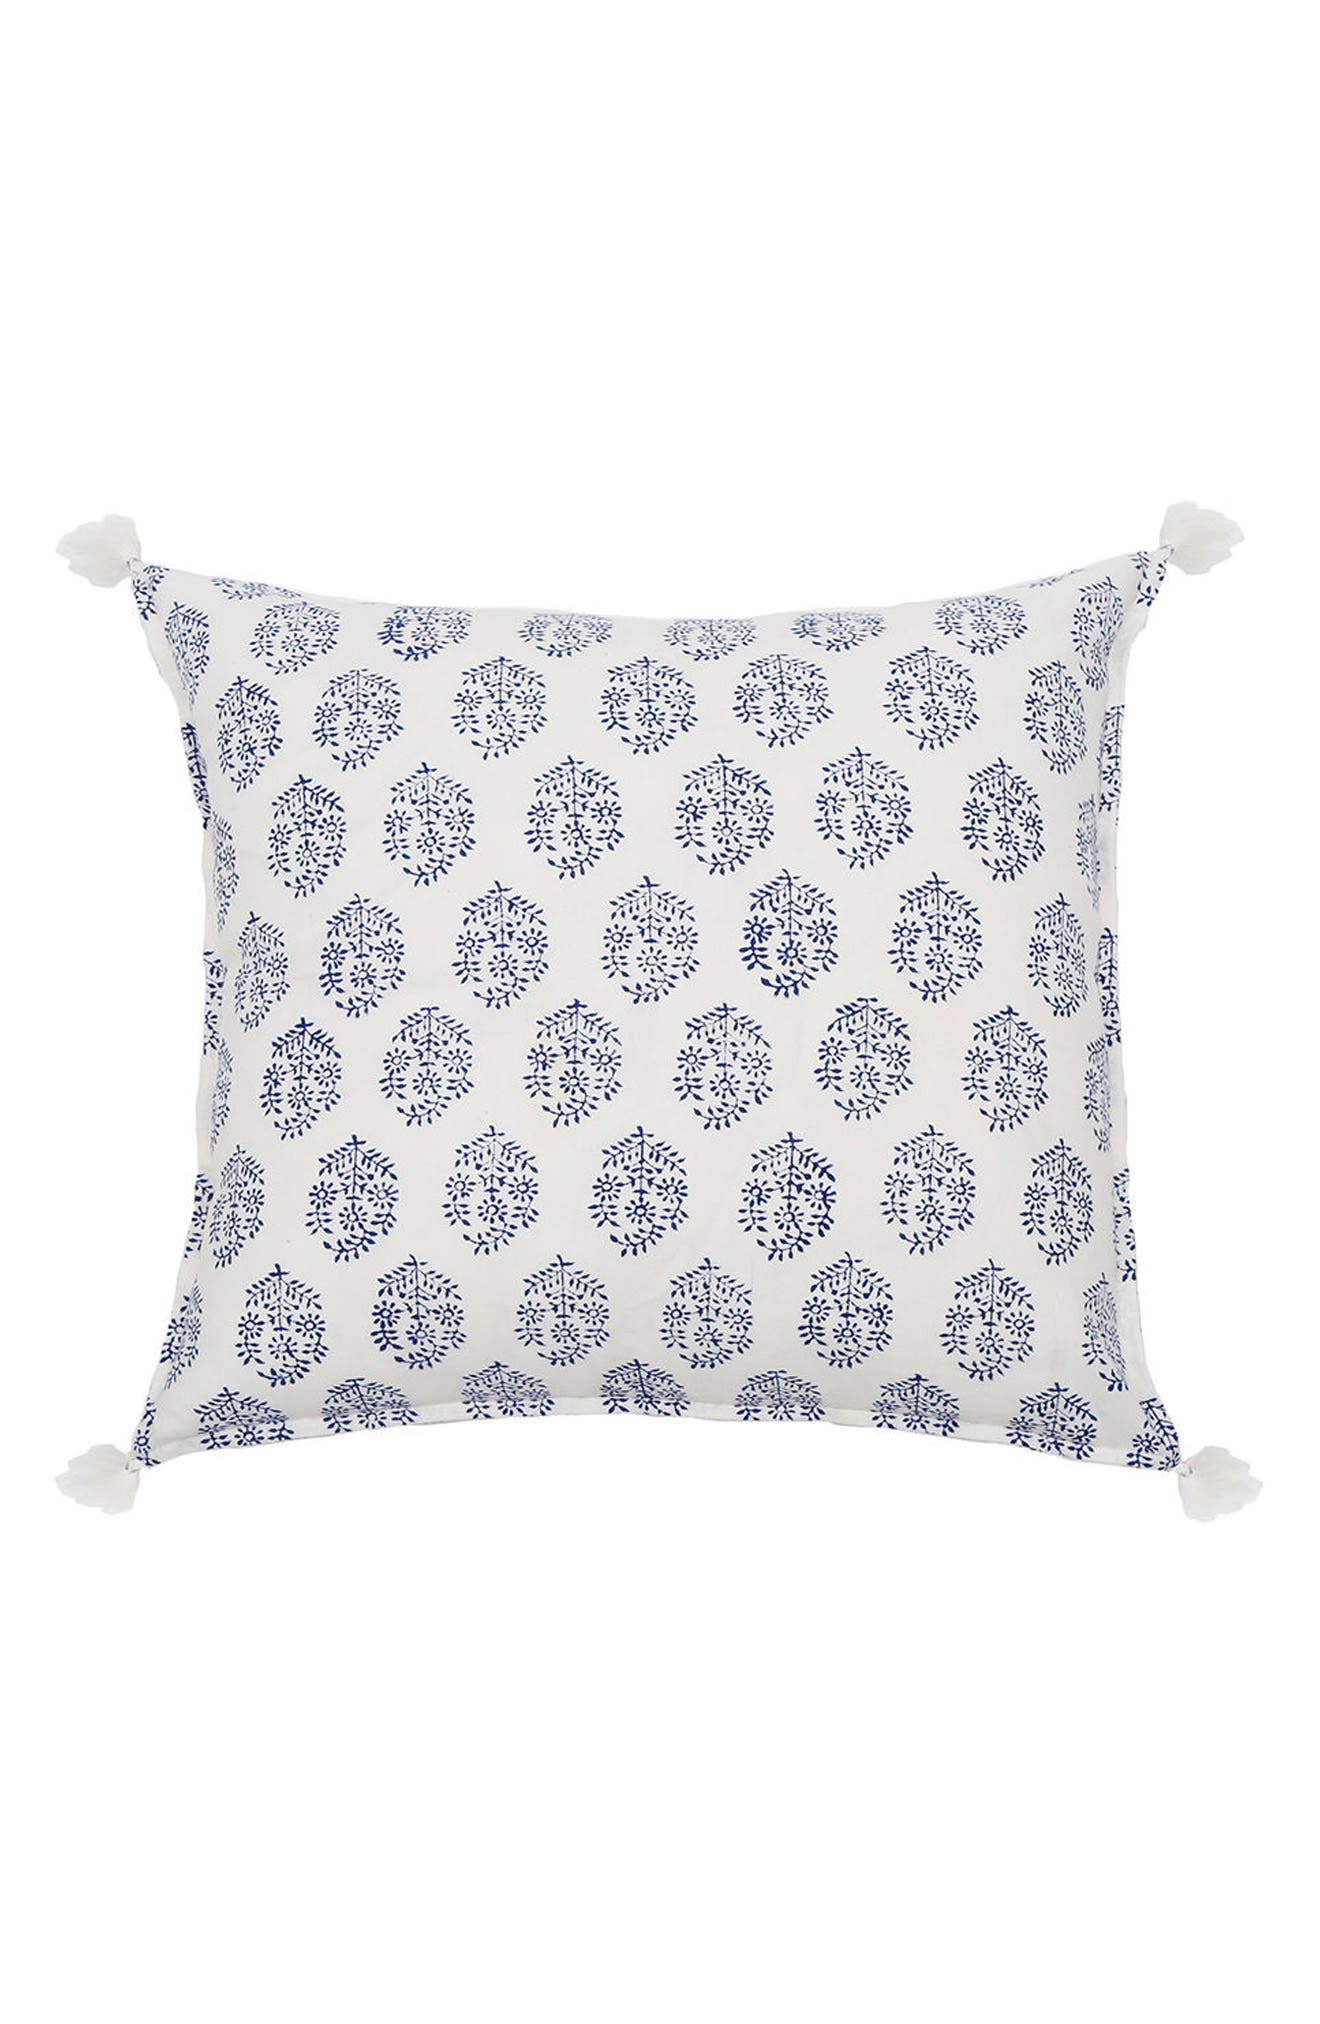 Main Image - Pom Pom at Home Fena Accent Pillow